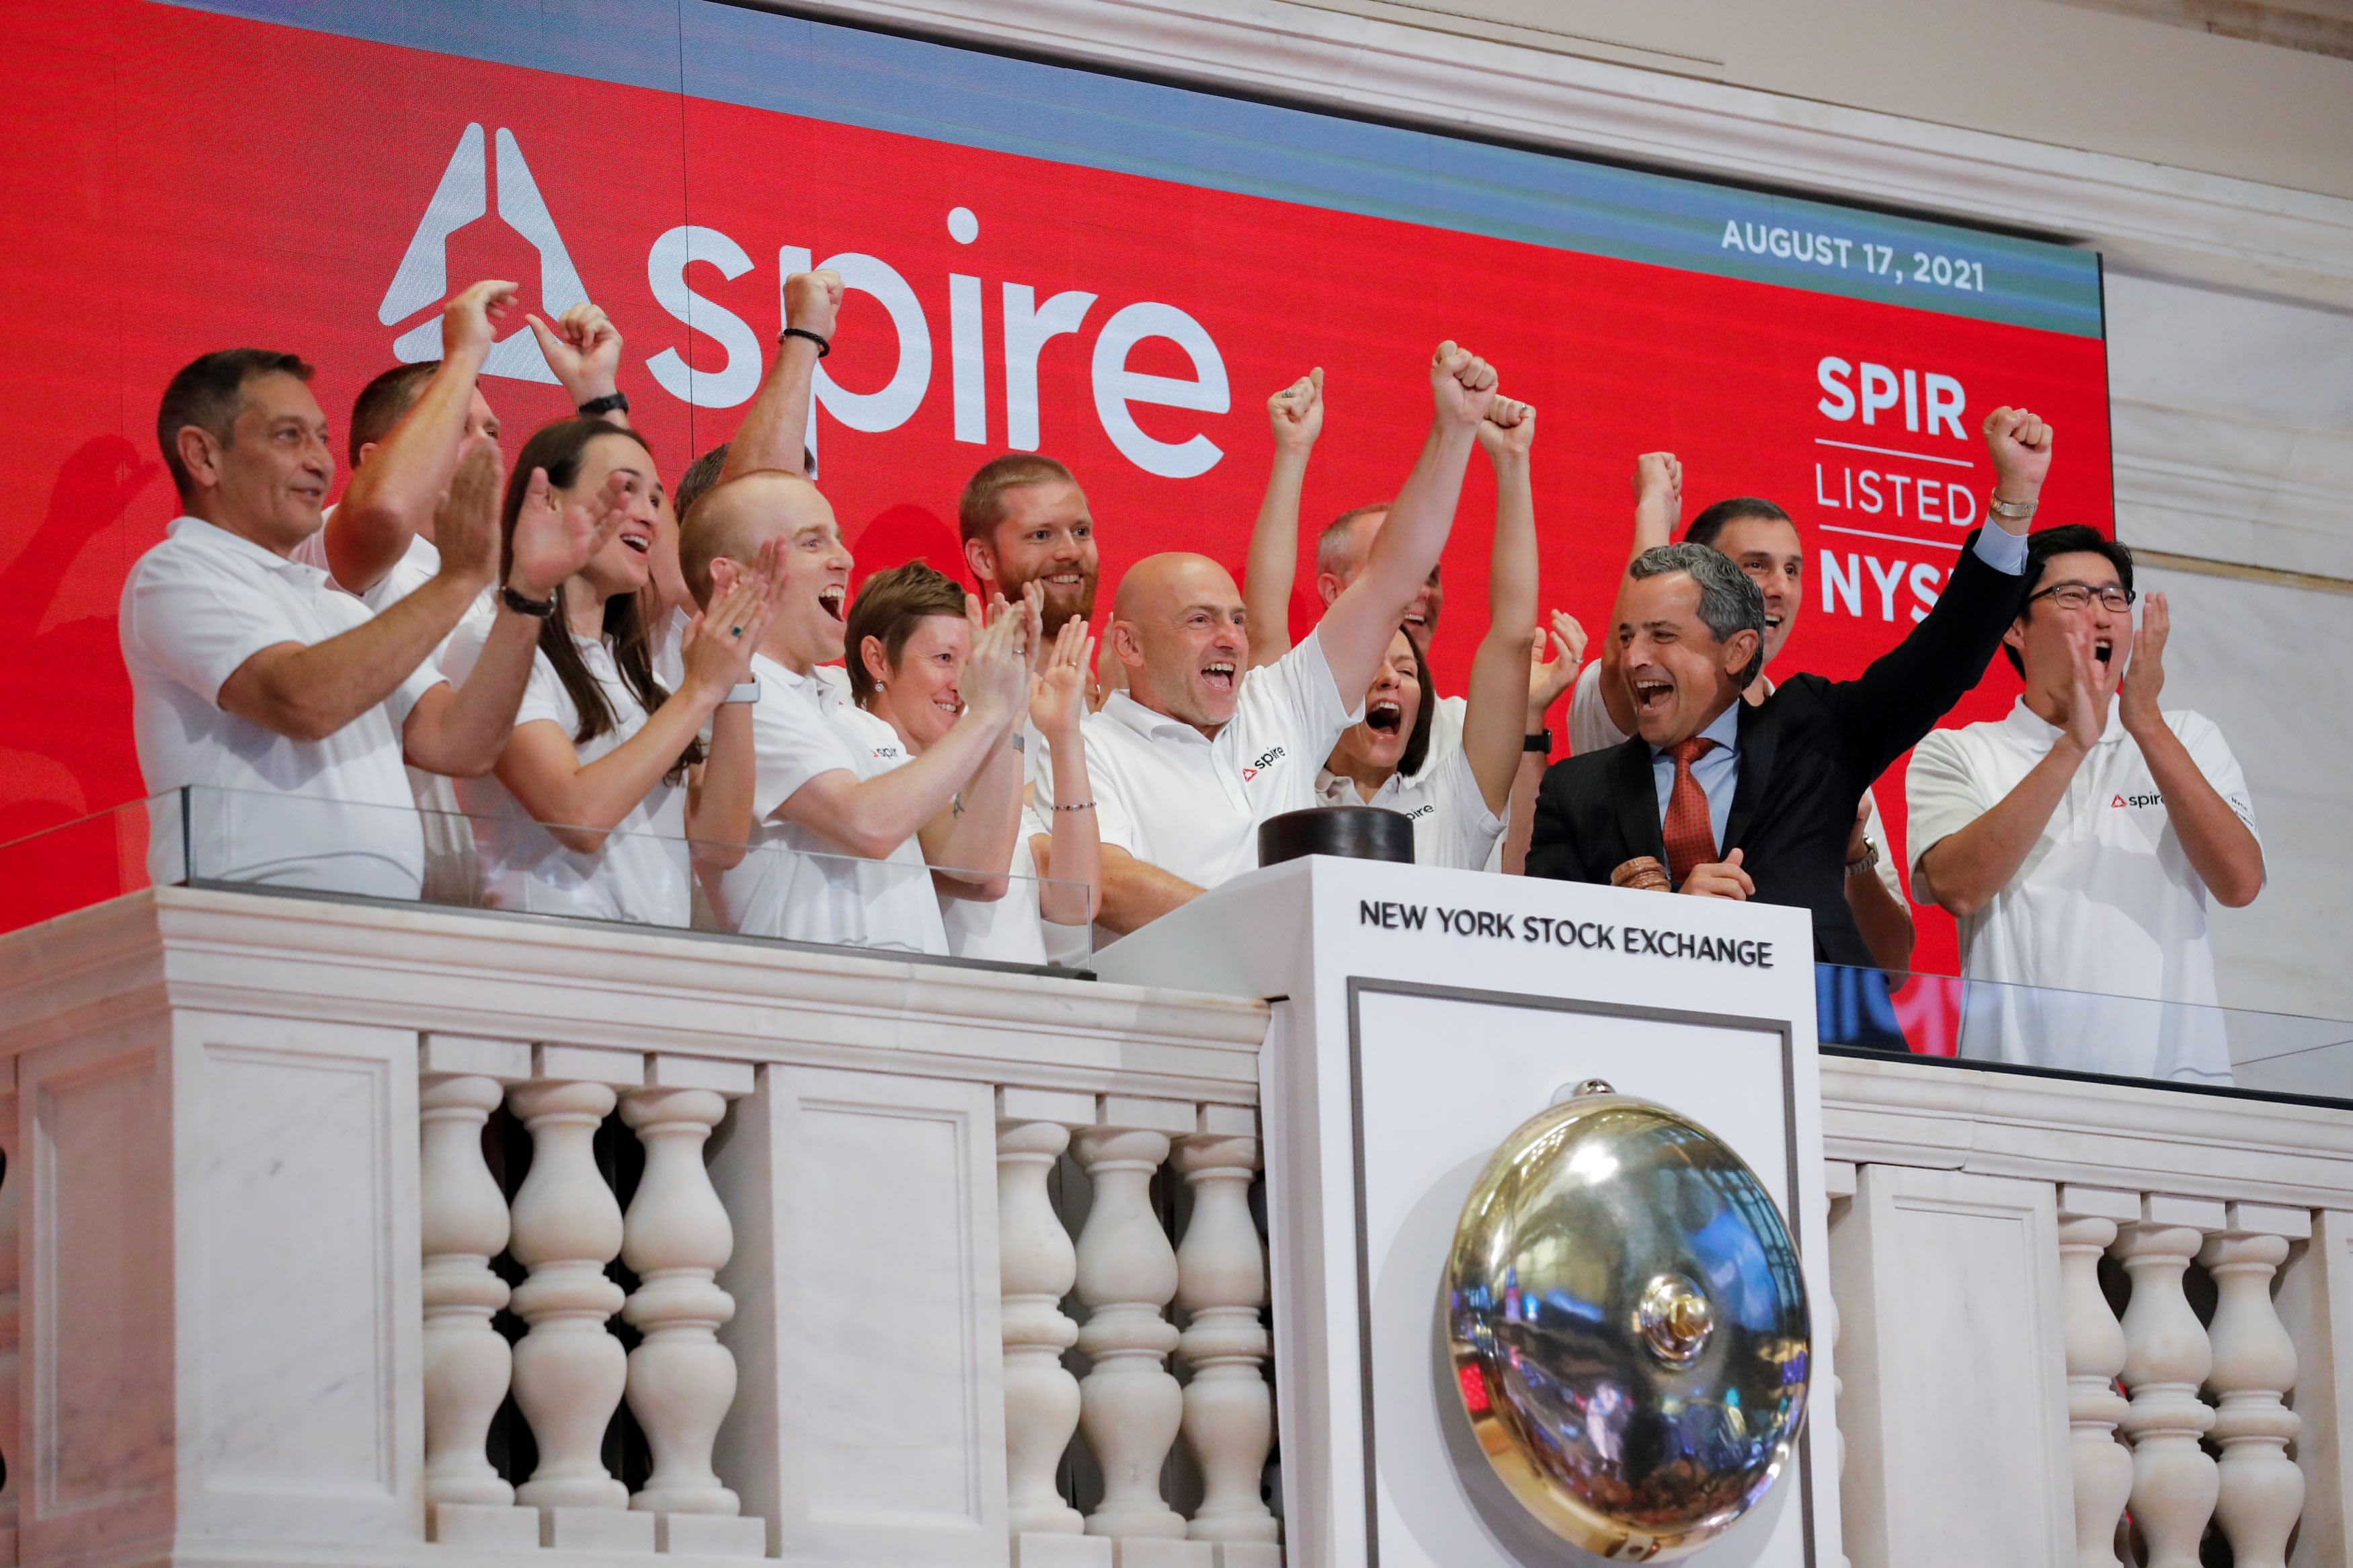 Satellite company Spire begins trading on the NYSE after completing SPAC merger